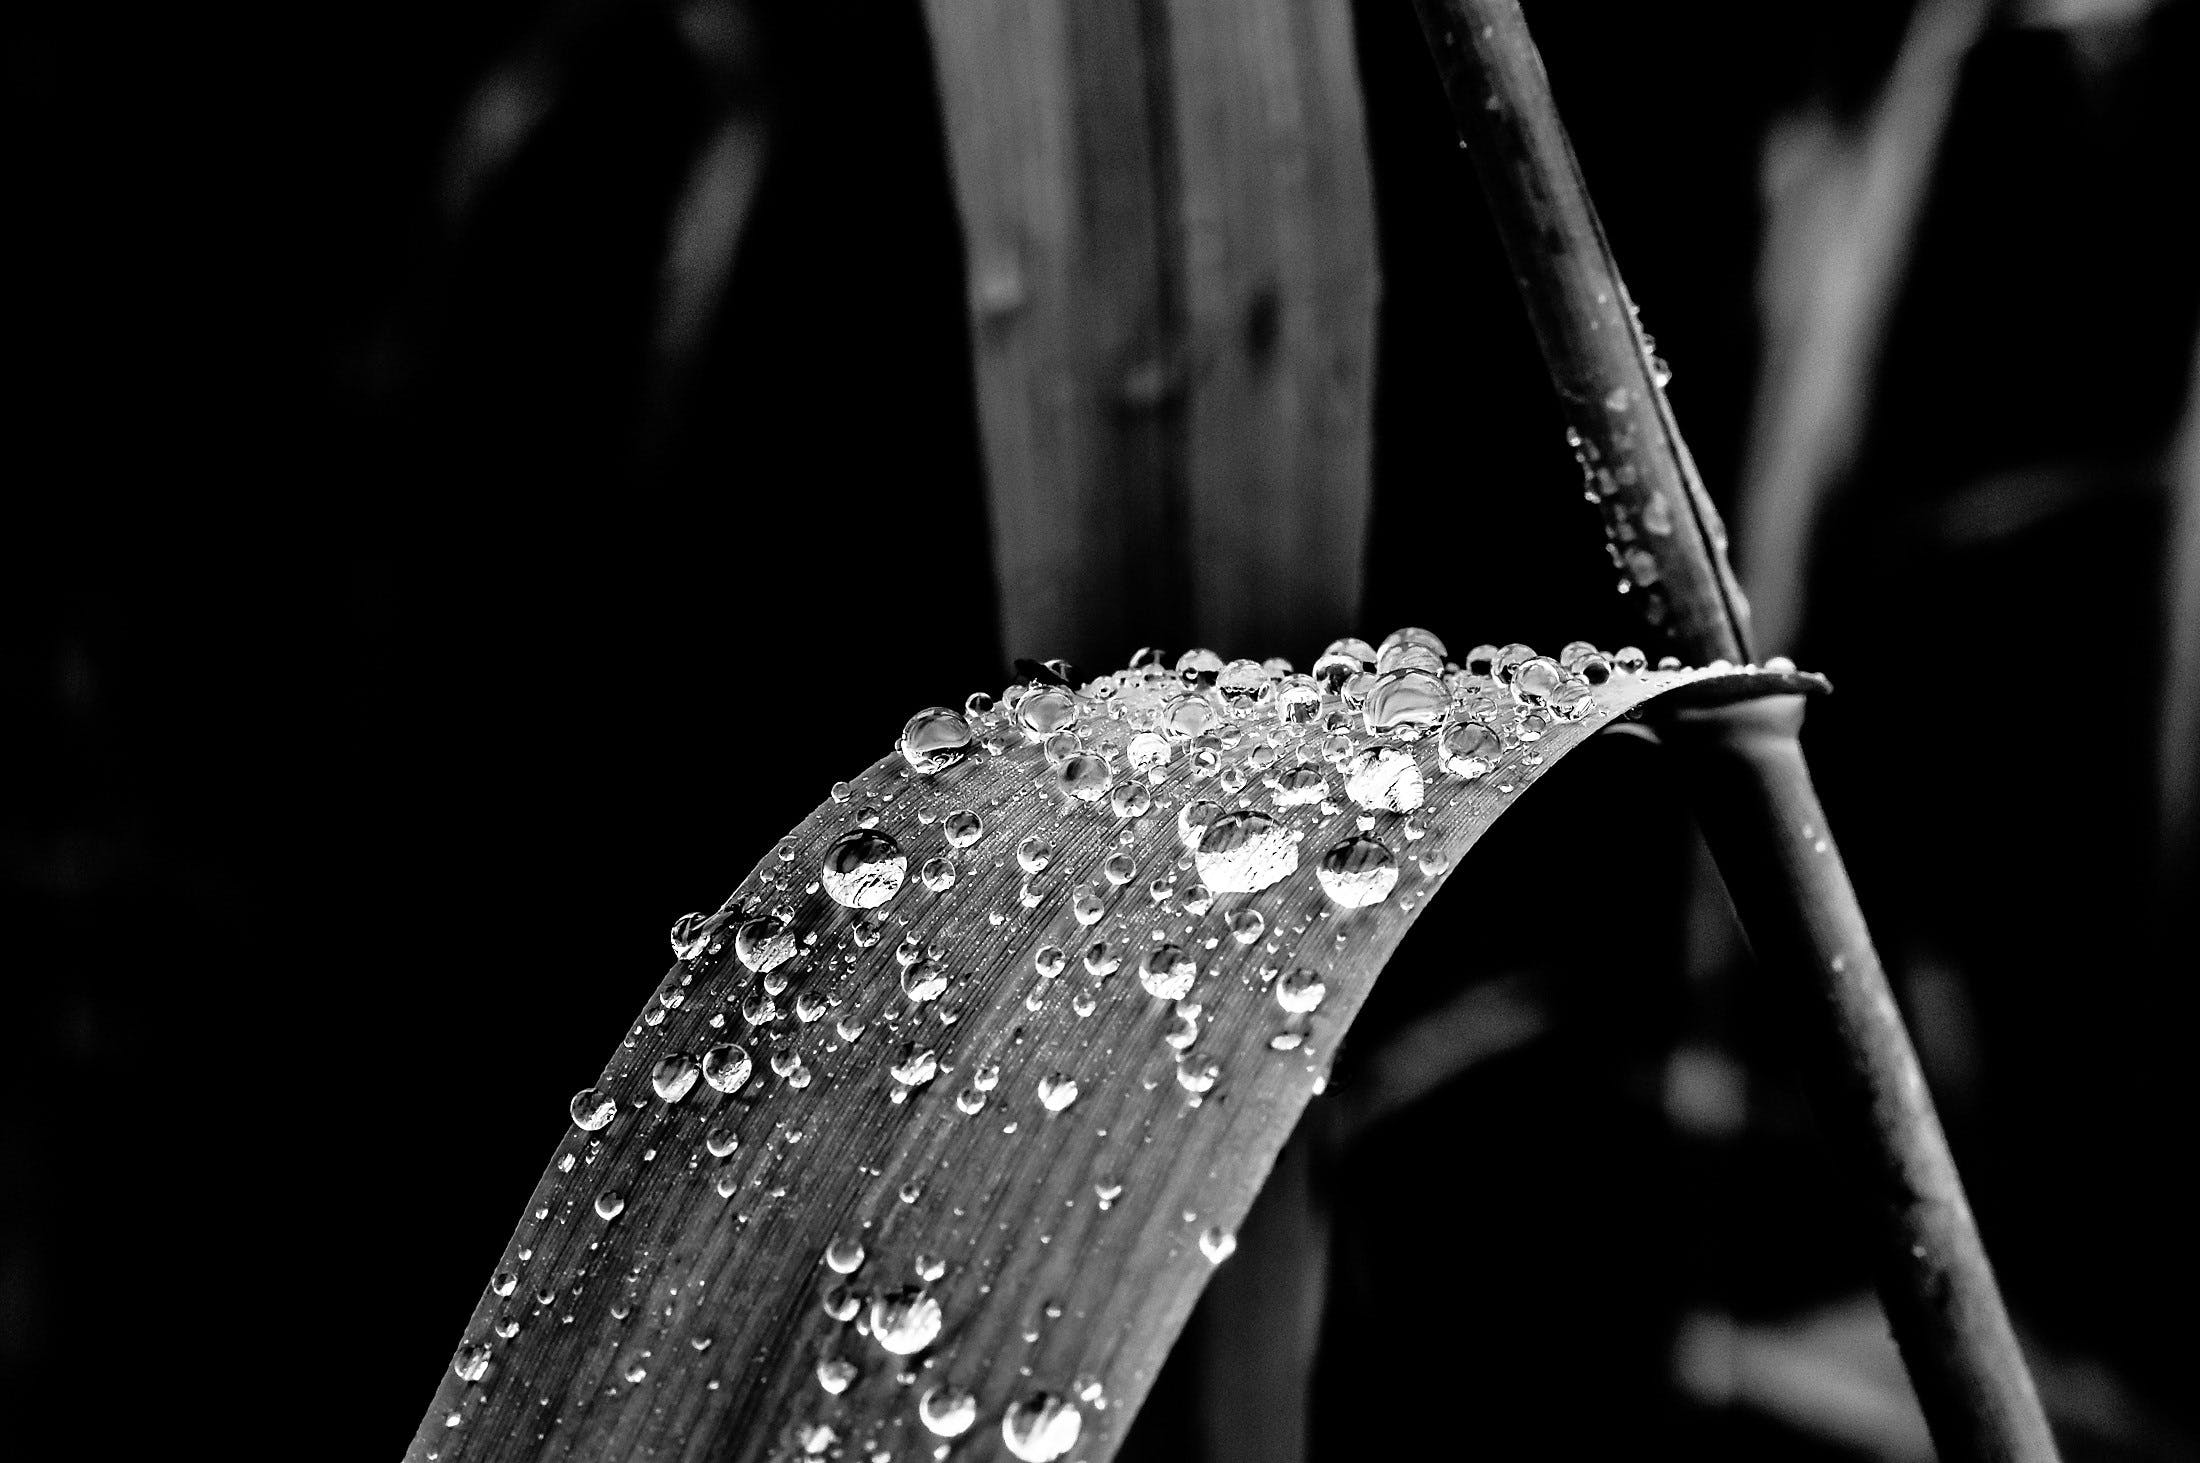 Grayscale Photo of Leaf With Dew Drops